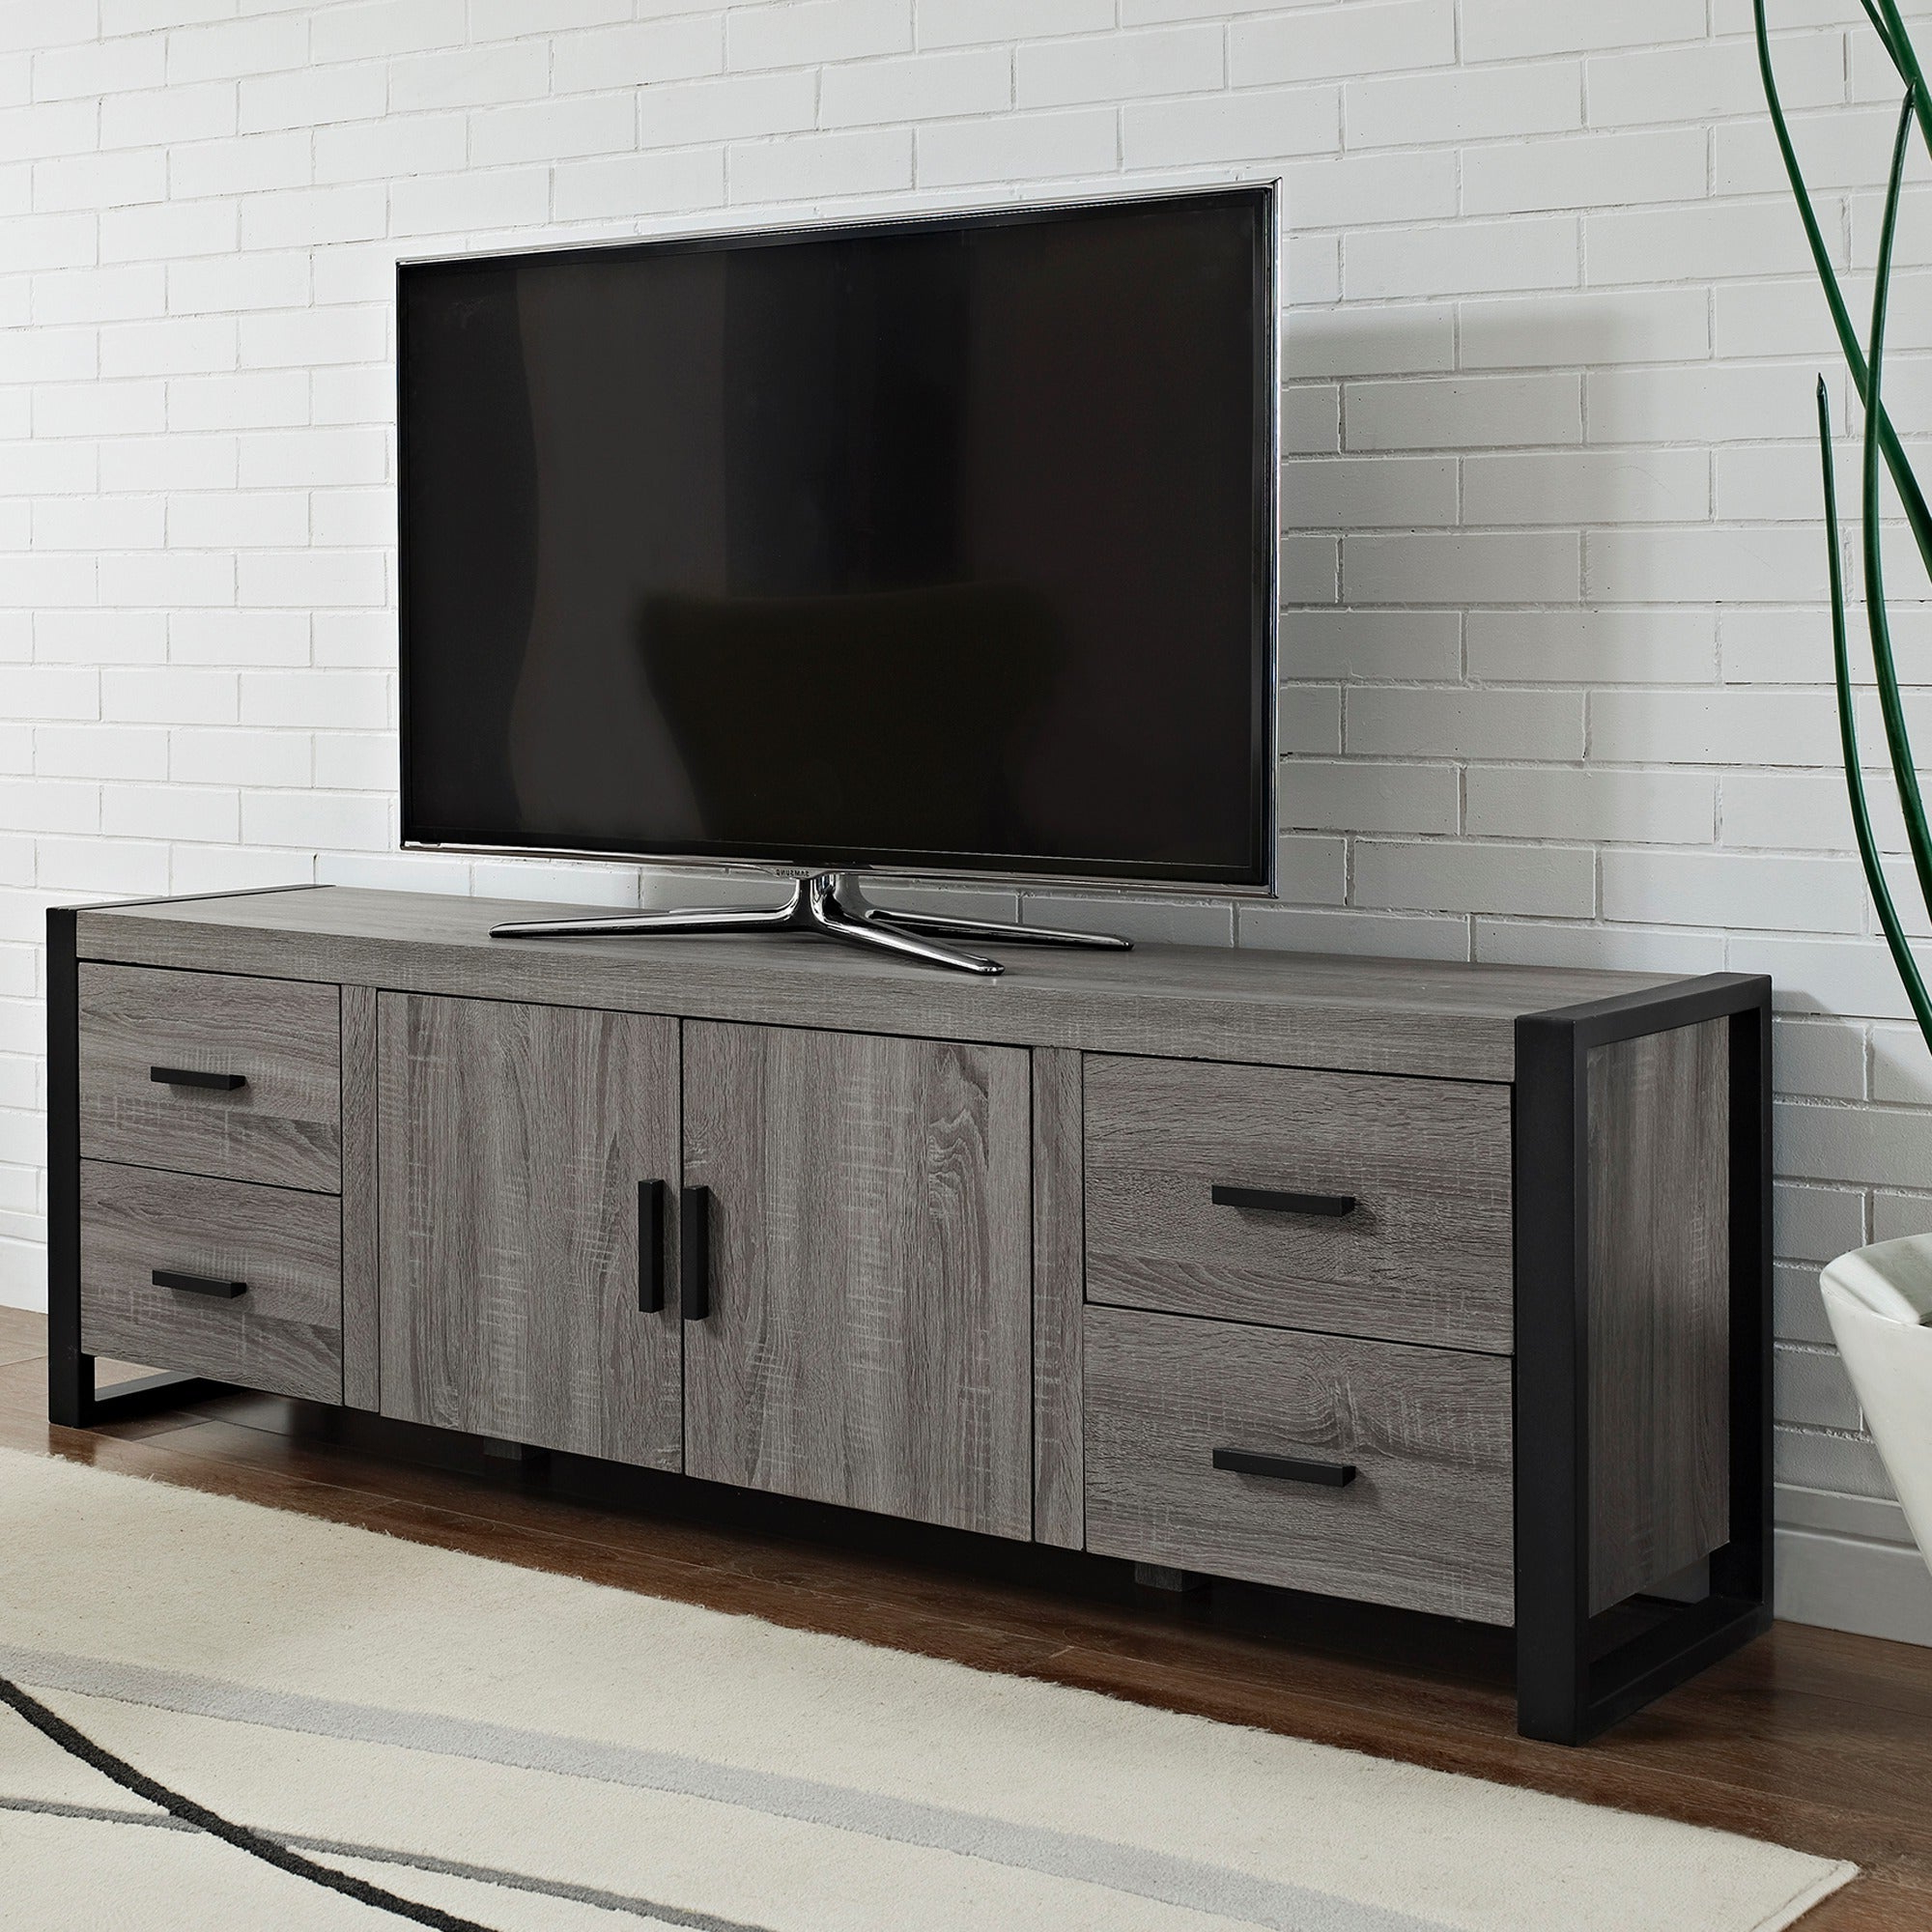 70 Inch Urban Blend Ash Grey Wood Tv Stand – Overstock In Famous Urban Rustic Tv Stands (View 9 of 10)